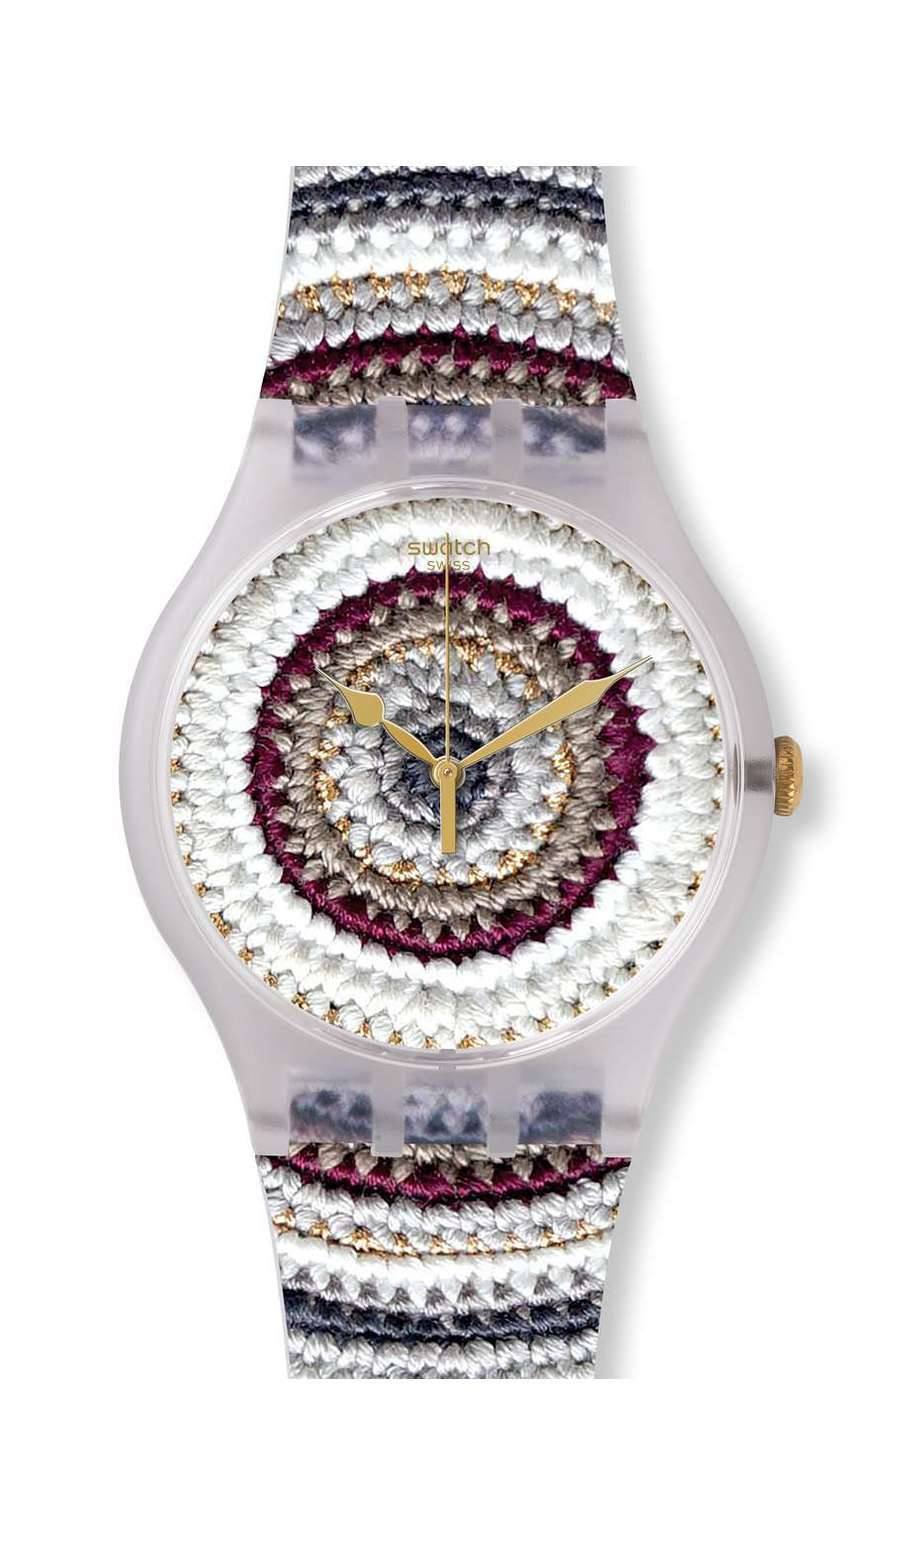 Swatch - TRICOTIME - 1